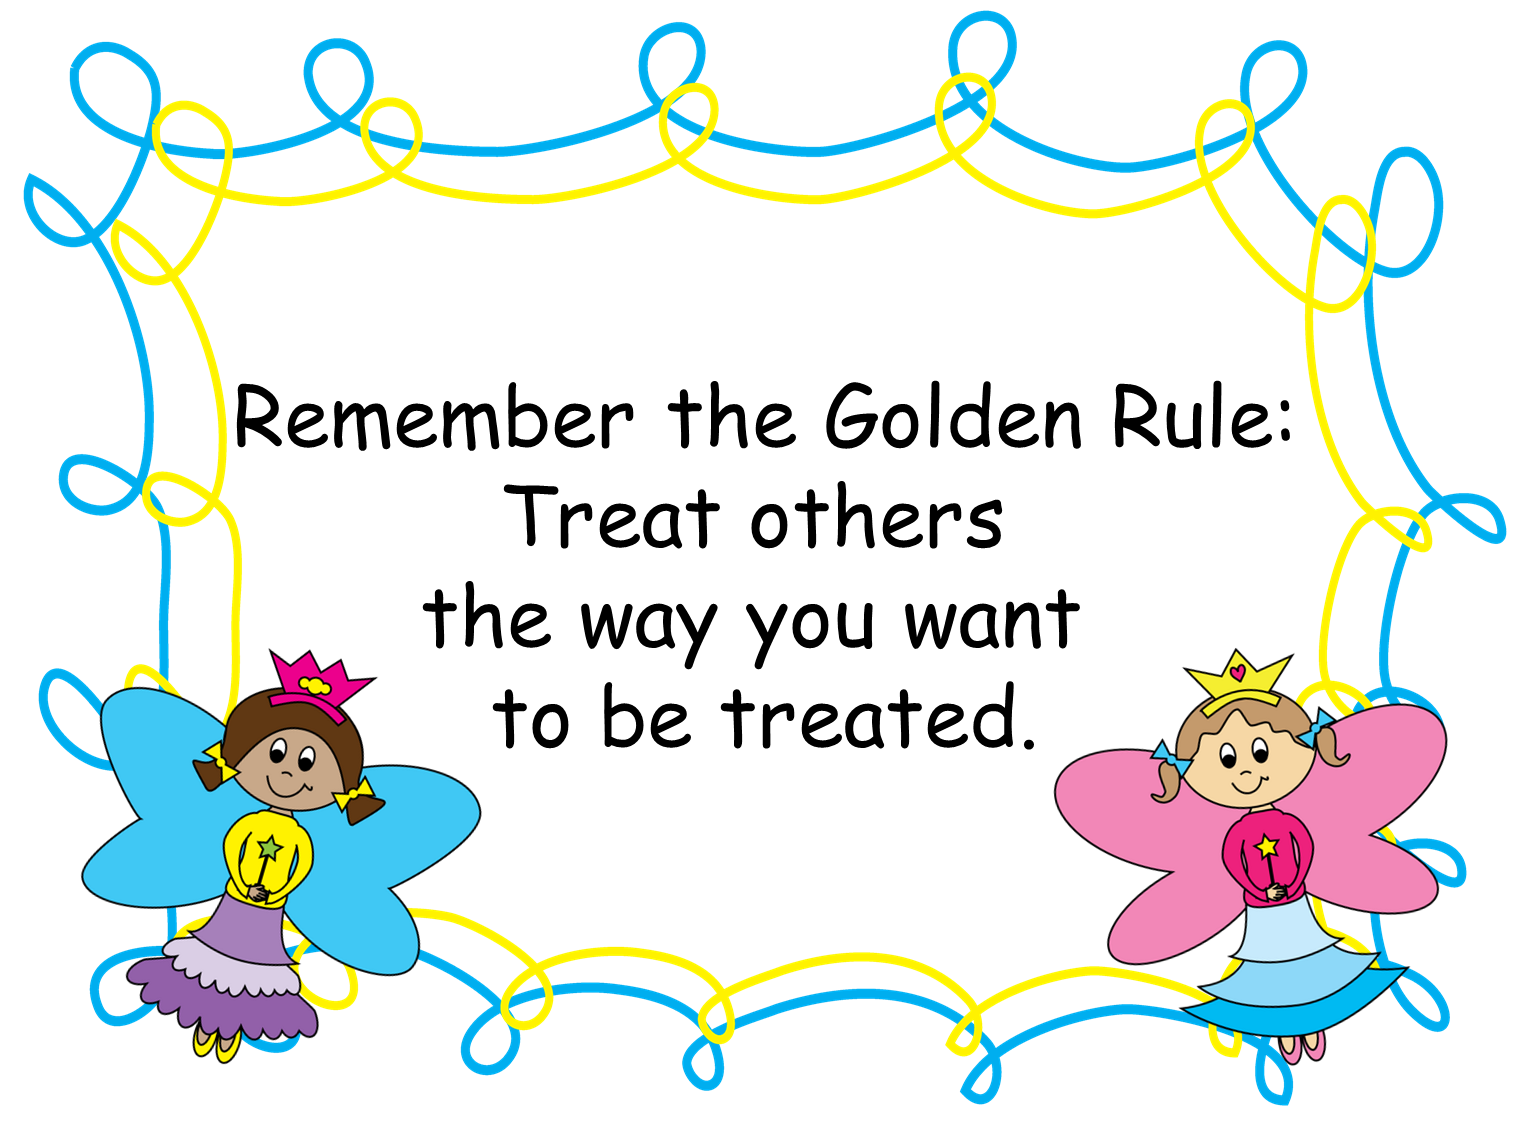 Month of february clipart image transparent February is Respect Month!   Mrs. Beaudoin's Classroom image transparent